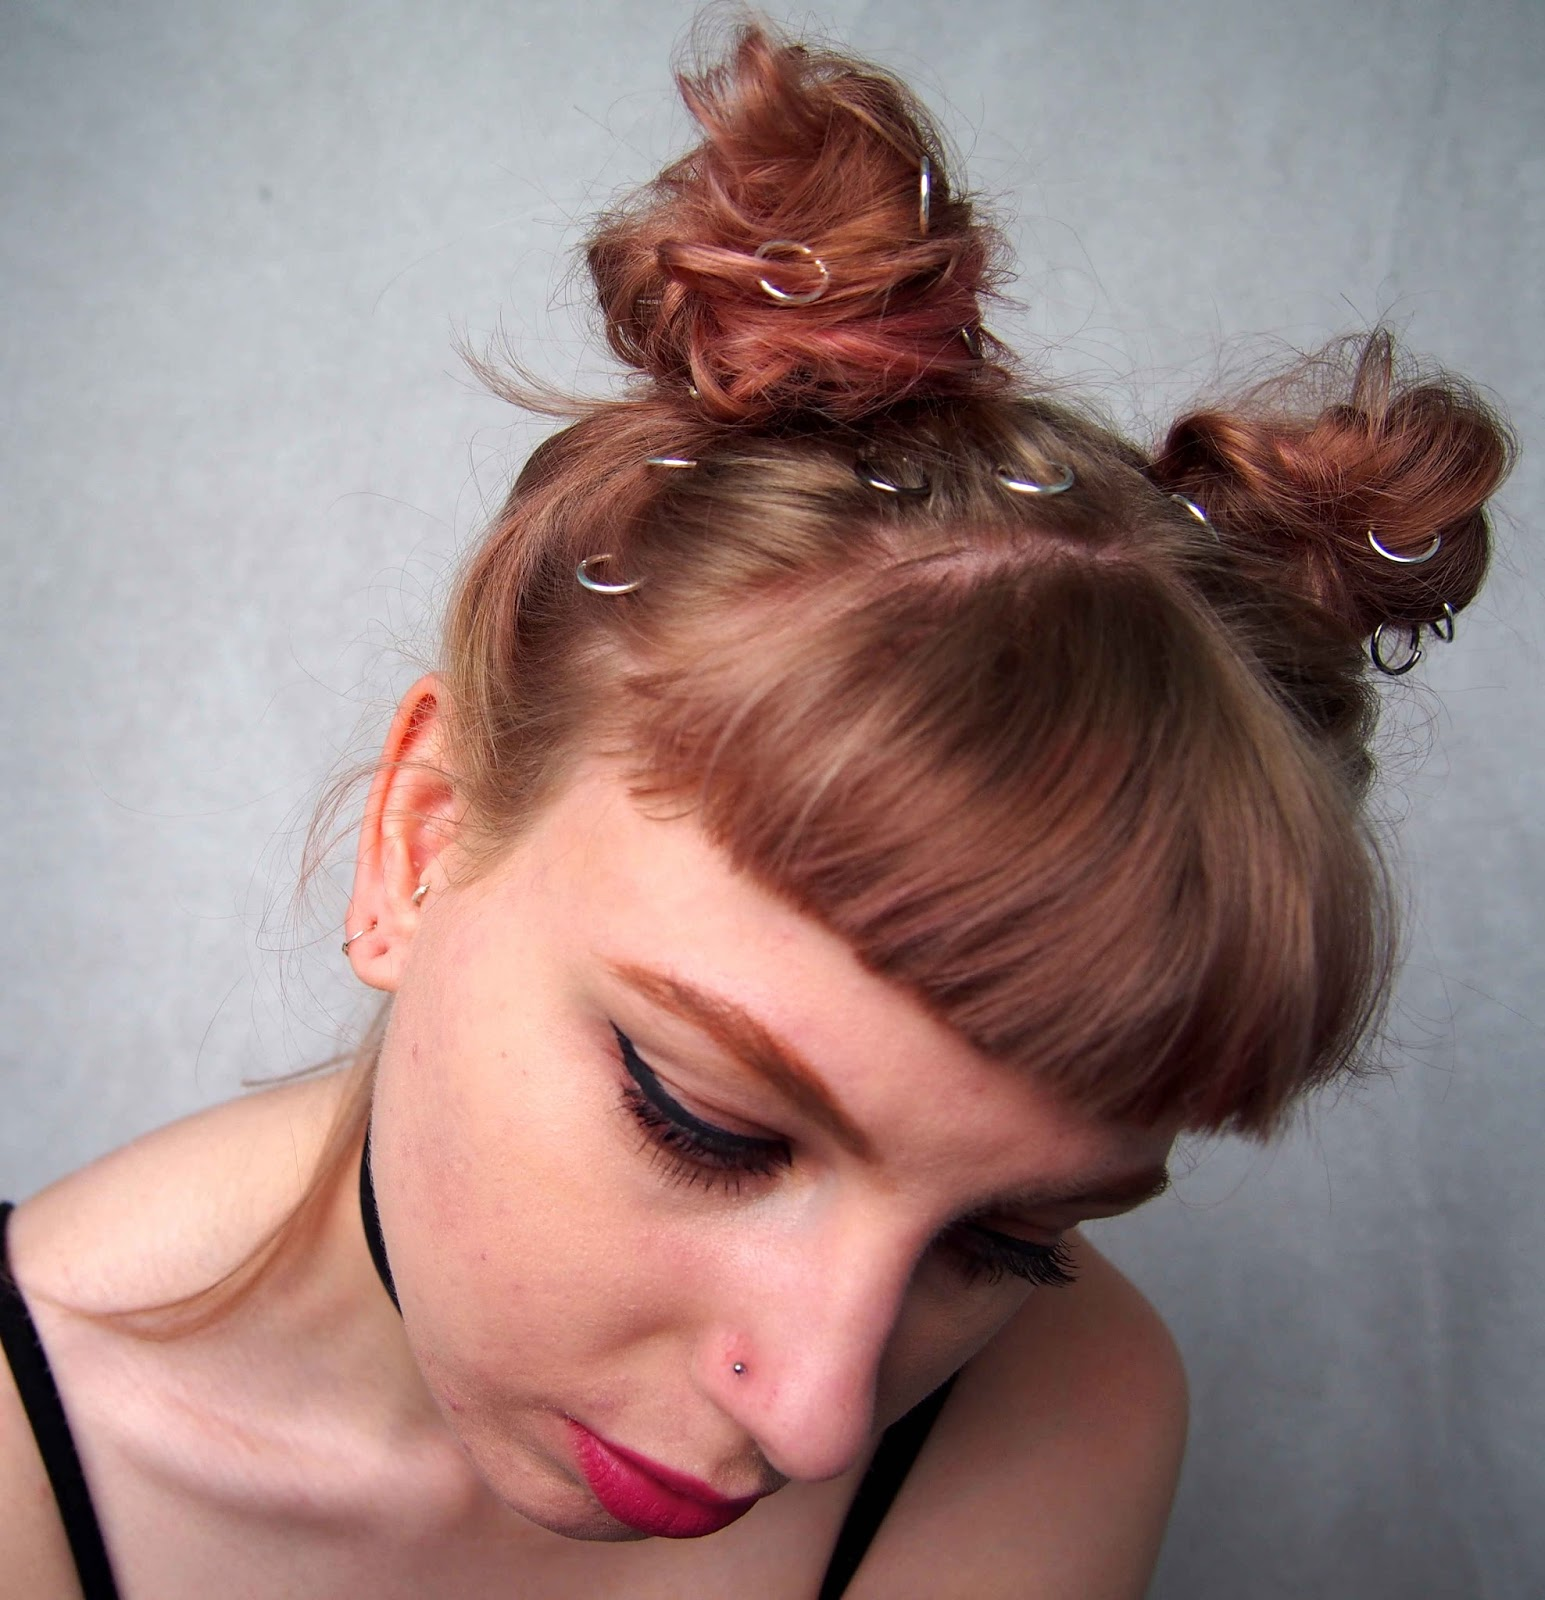 grunge hairstyle, grunge hair, space buns, grunge buns, hair rings, how to wear hair rings, grunge hair rings, pink hair, rose gold hair, dusty pink hair 1